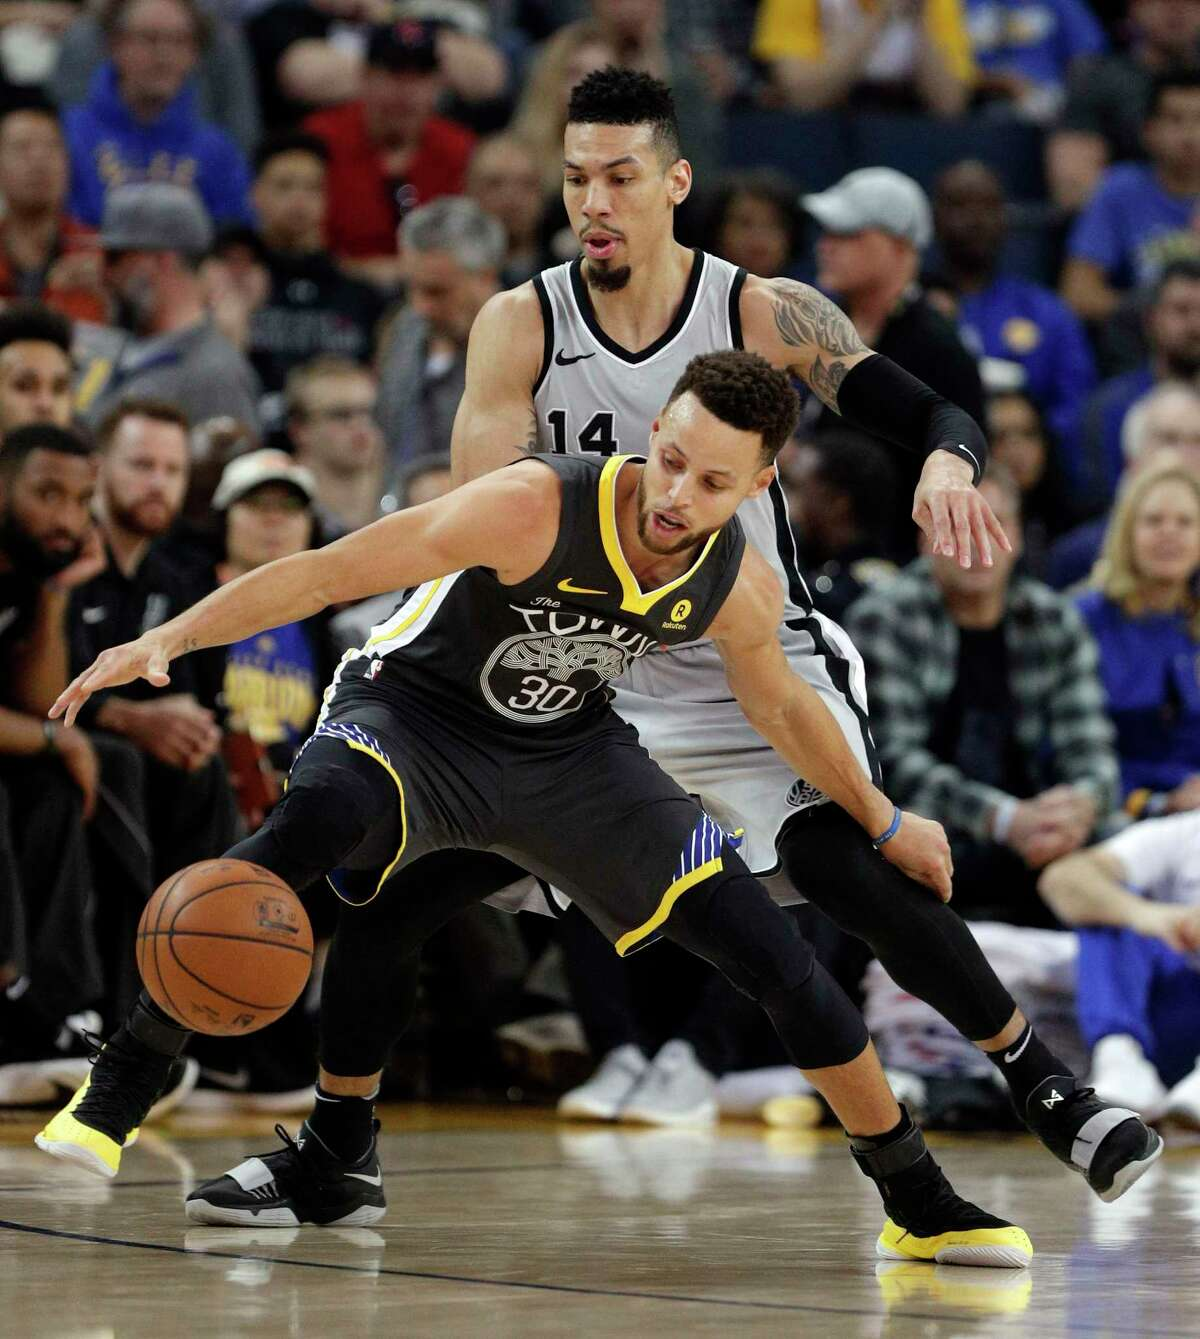 Stephen Curry (30) loses control of the ball while defended by Danny Green (14) in the first half as the Golden State Warriors played the San Antonio Spurs at Oracle Arena in Oakland, Calif., on Saturday, February 10, 2018.